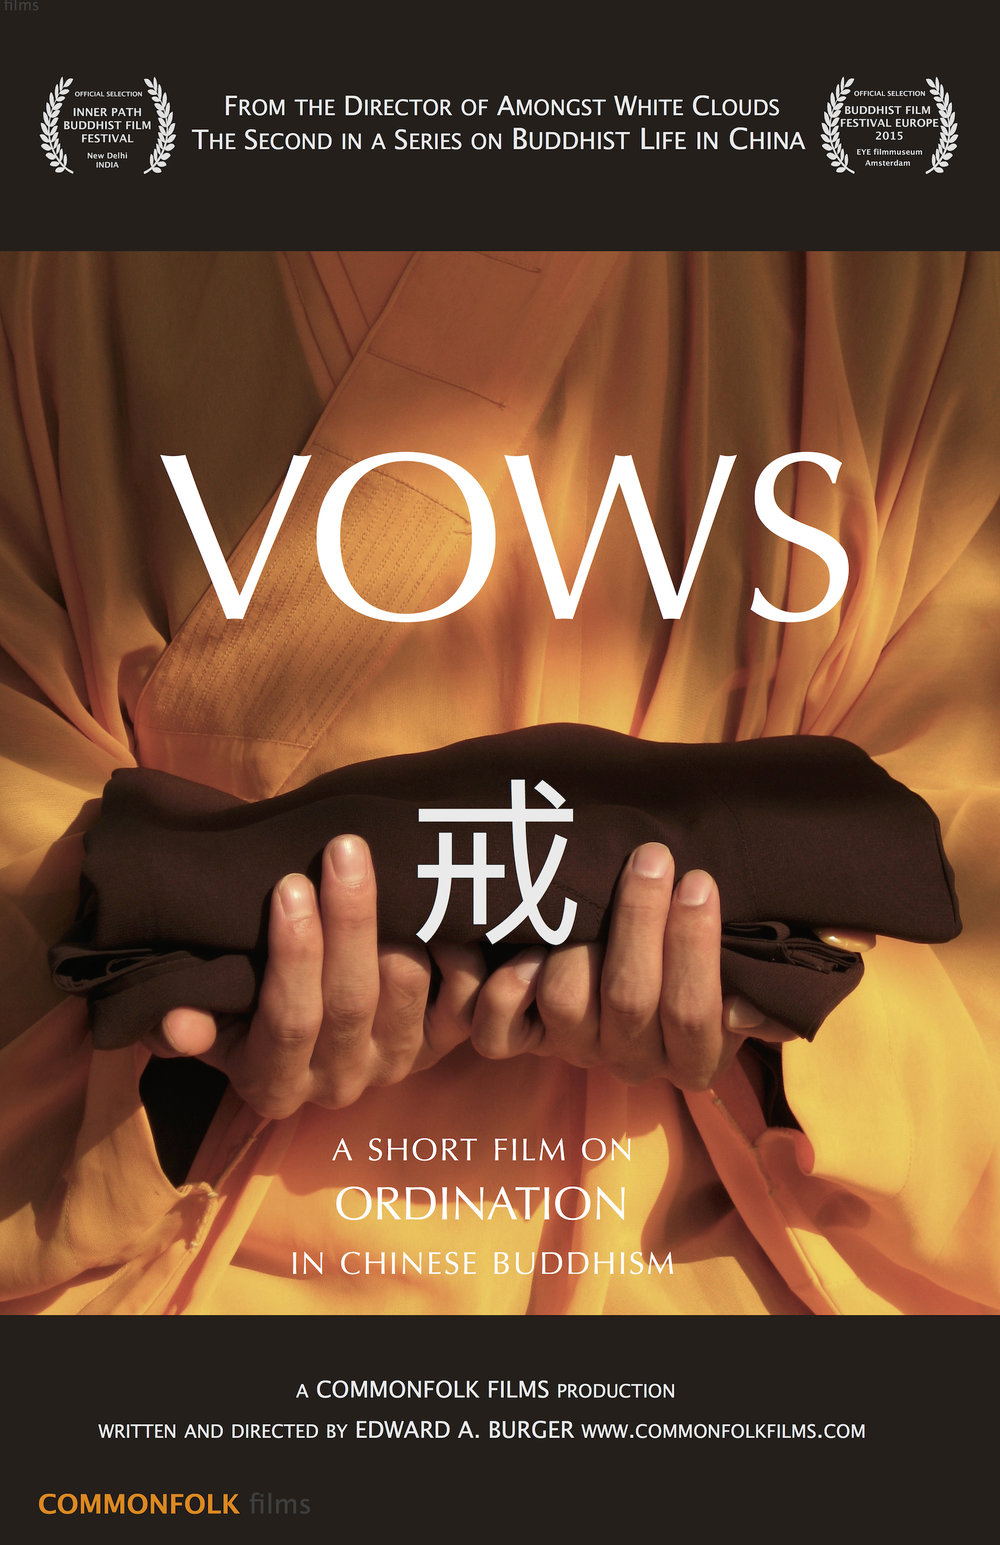 VOWS - A short film on ordination in Chinese Buddhism